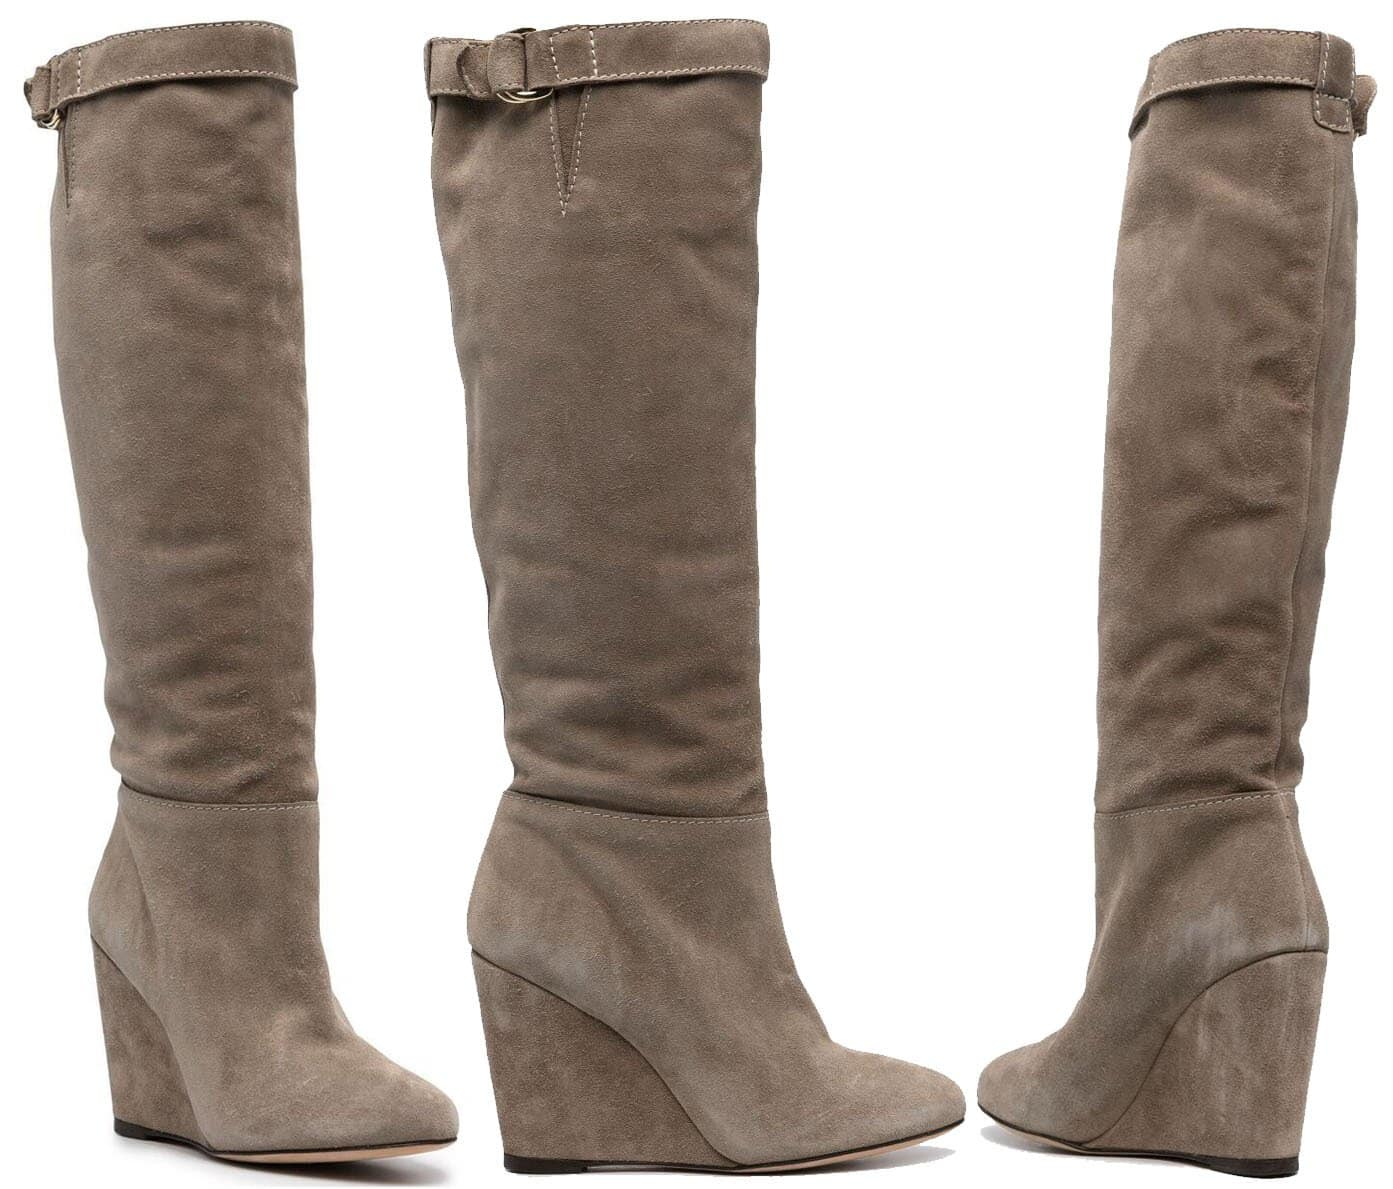 A pair of wedge boots should give a chic and comfy finish to any winter outfit